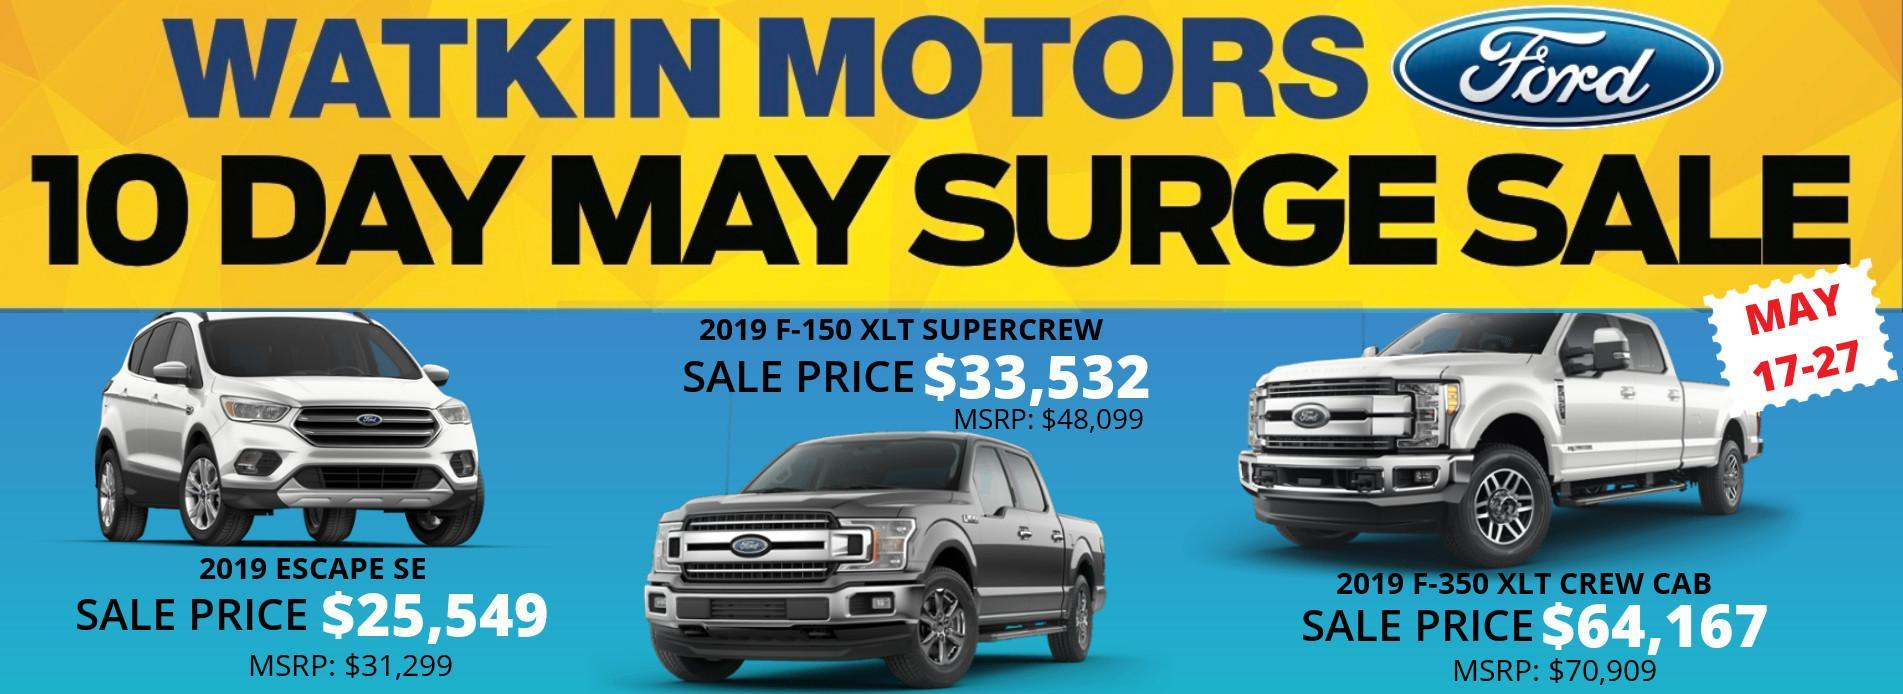 2019 May Surge Sale Watkin Motors Ford